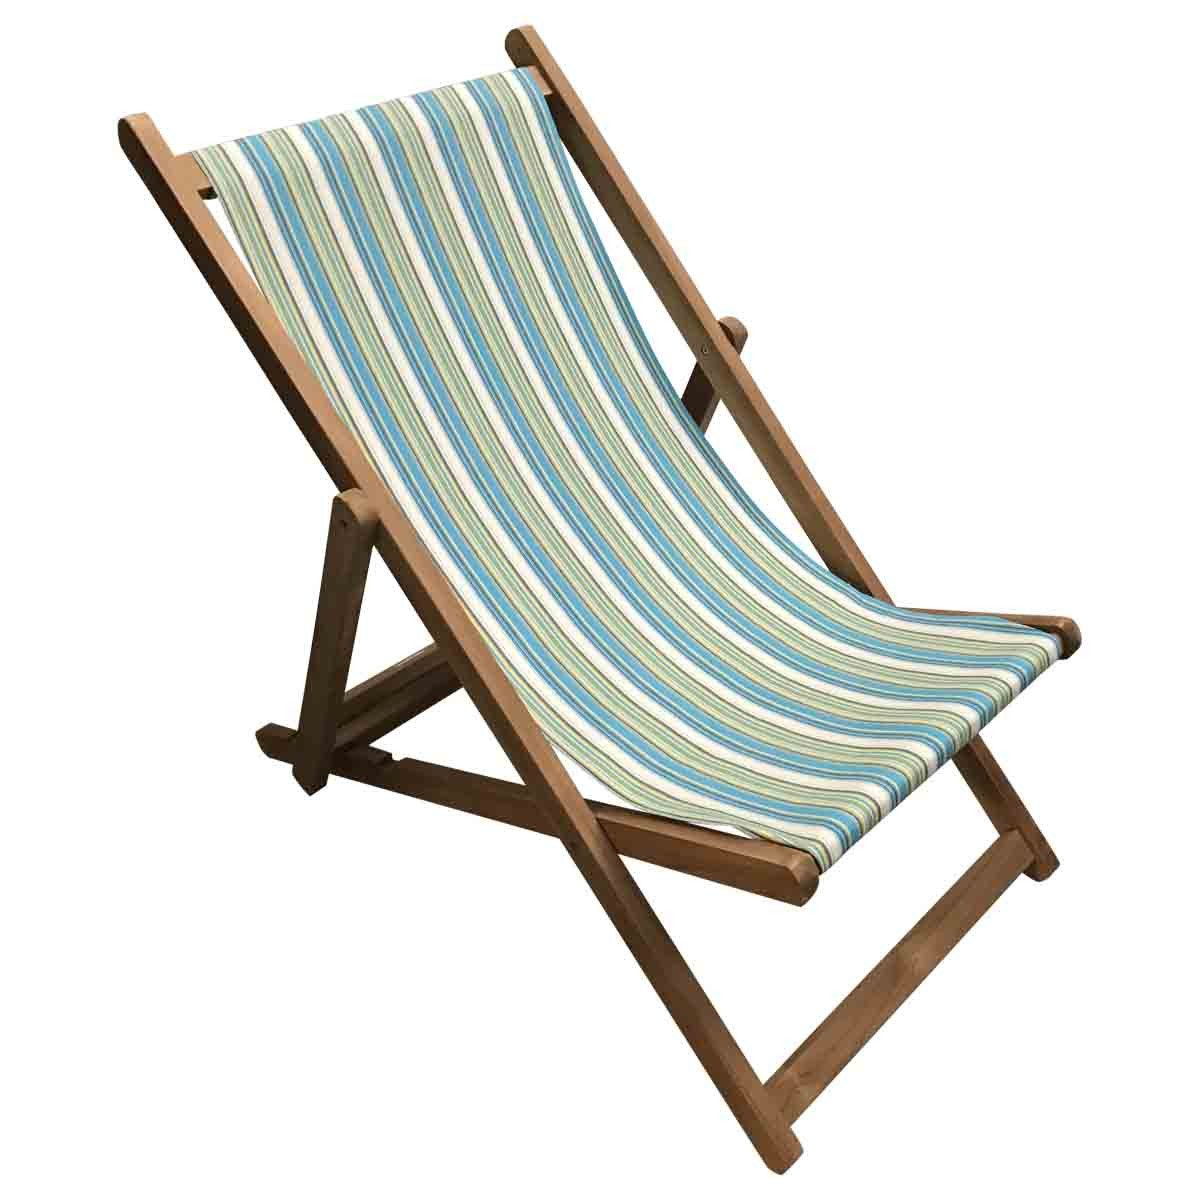 Aquatics Premium Teak Hardwood Striped Deckchair - Deckchair Stripes